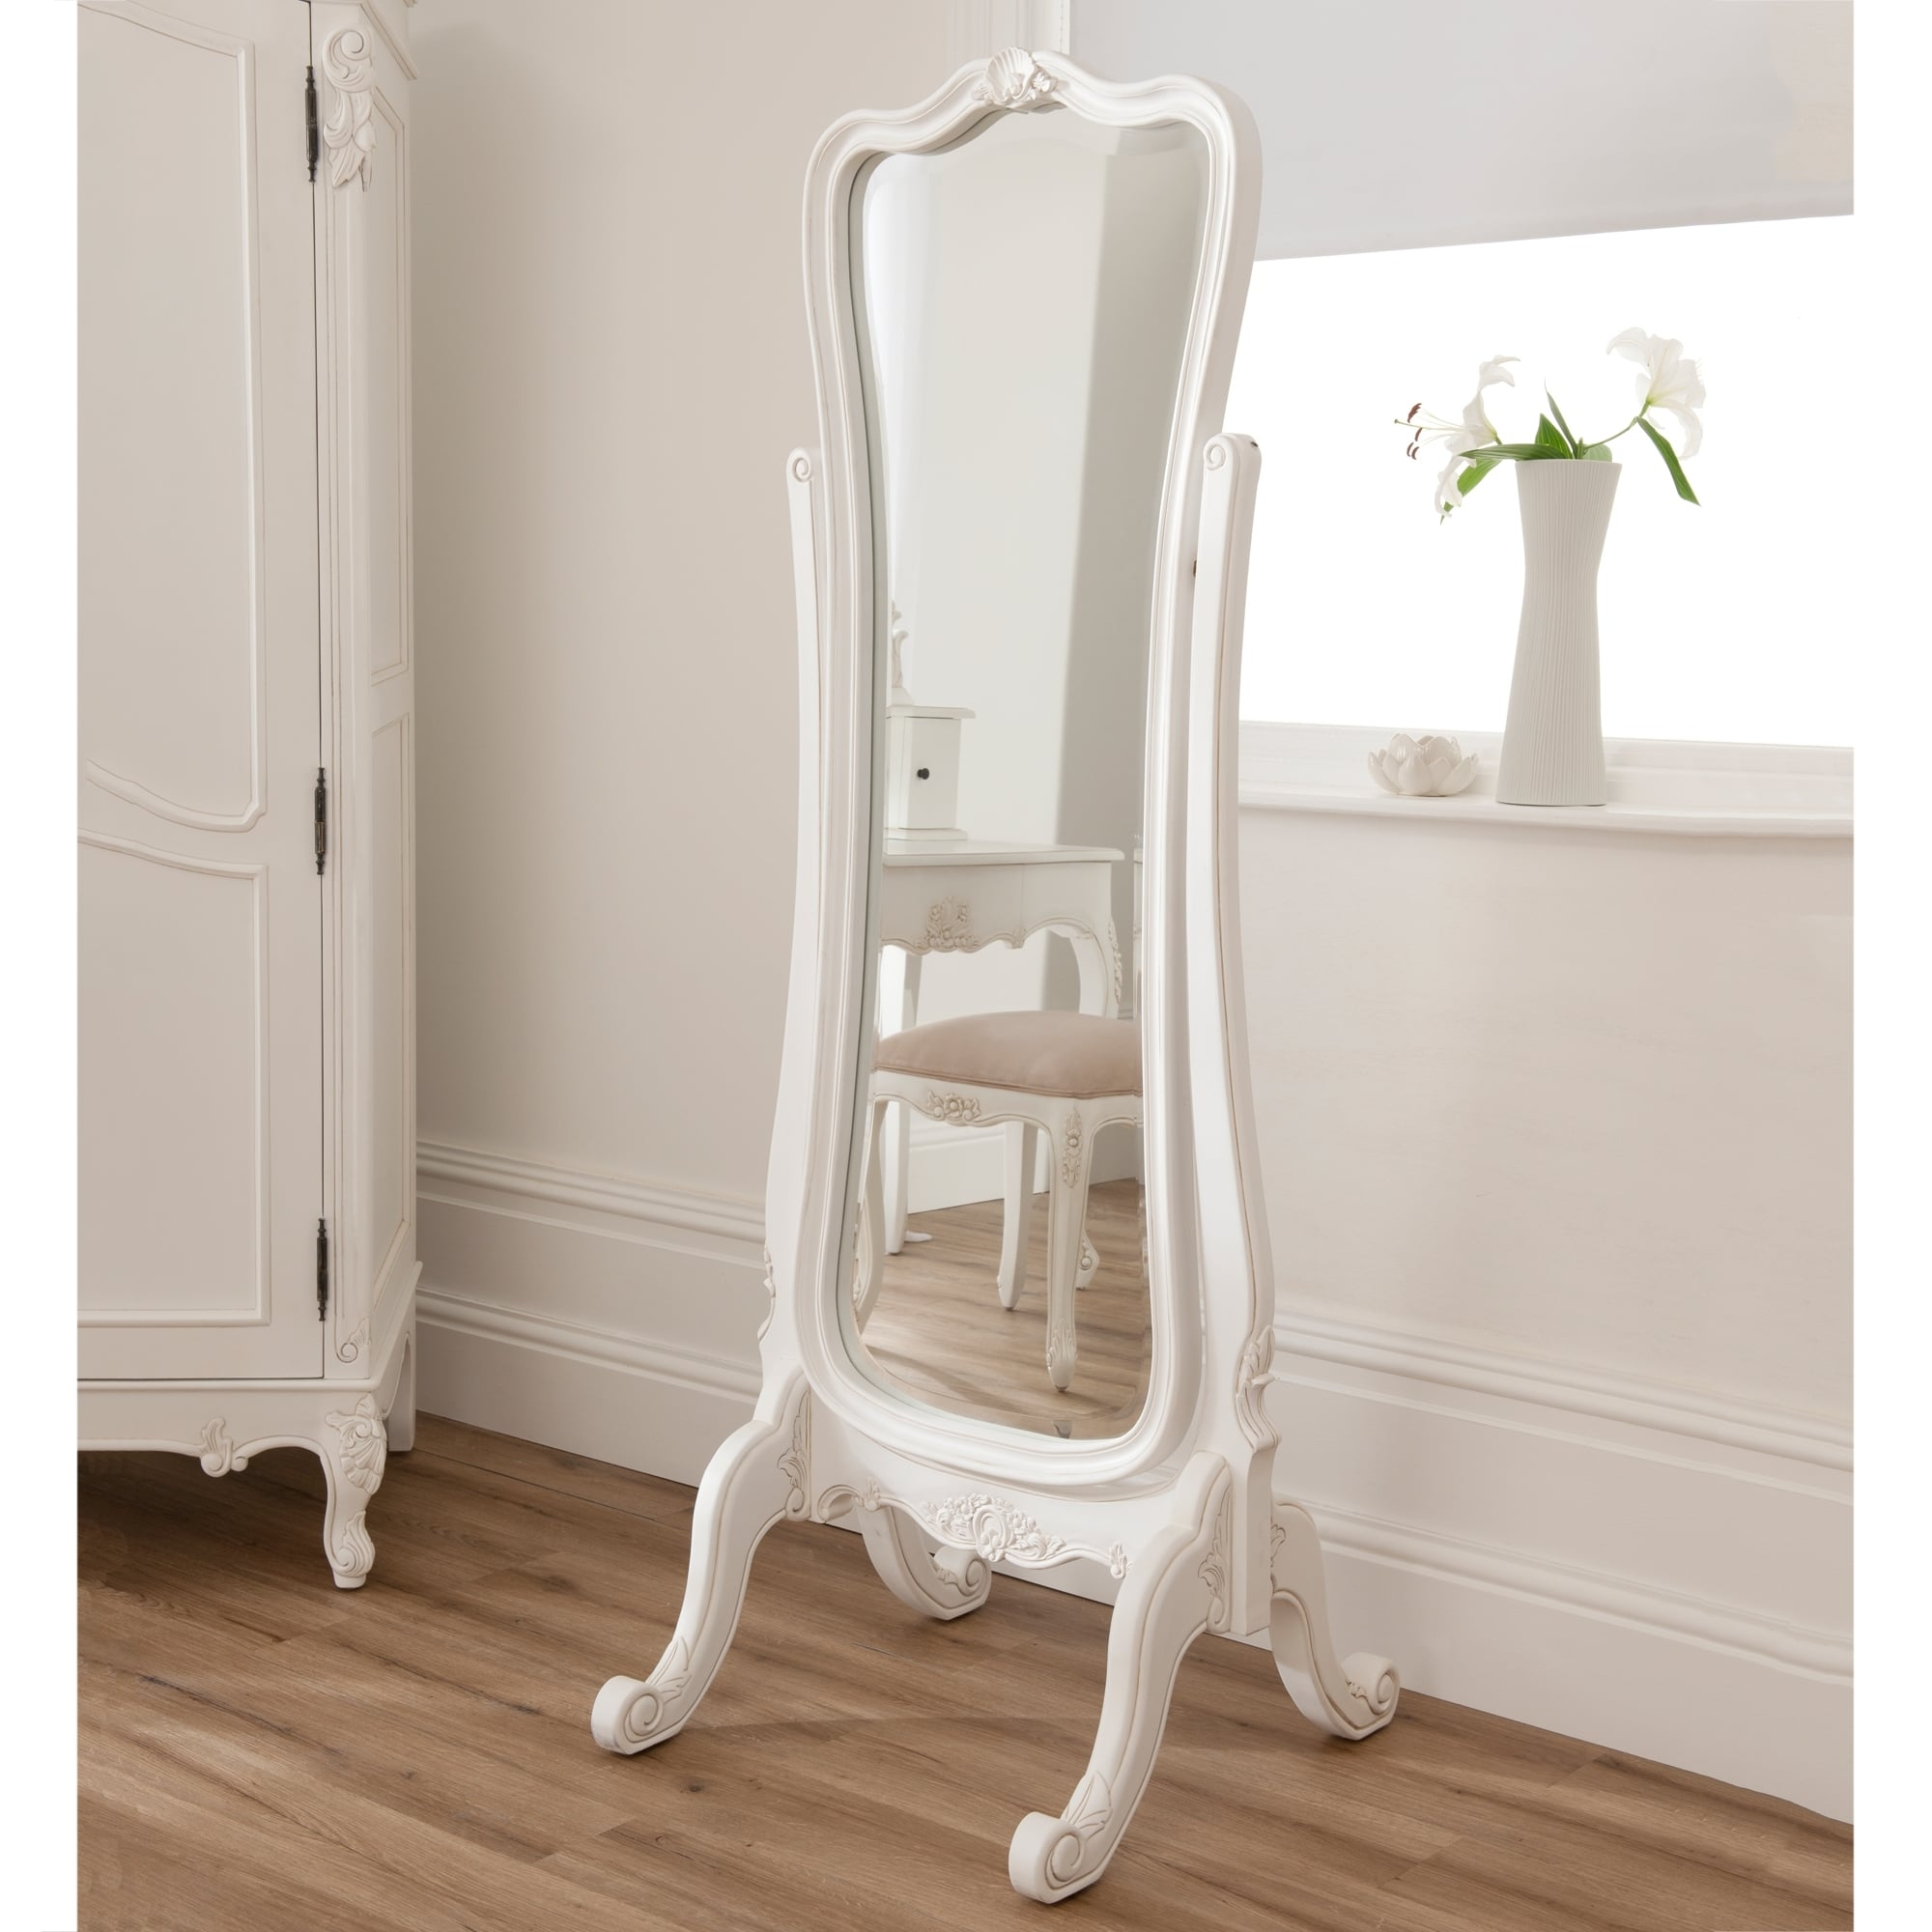 Cheval Mirrors French Style Mirrors Shab Chic Intended For French Floor Standing Mirror (Image 11 of 15)